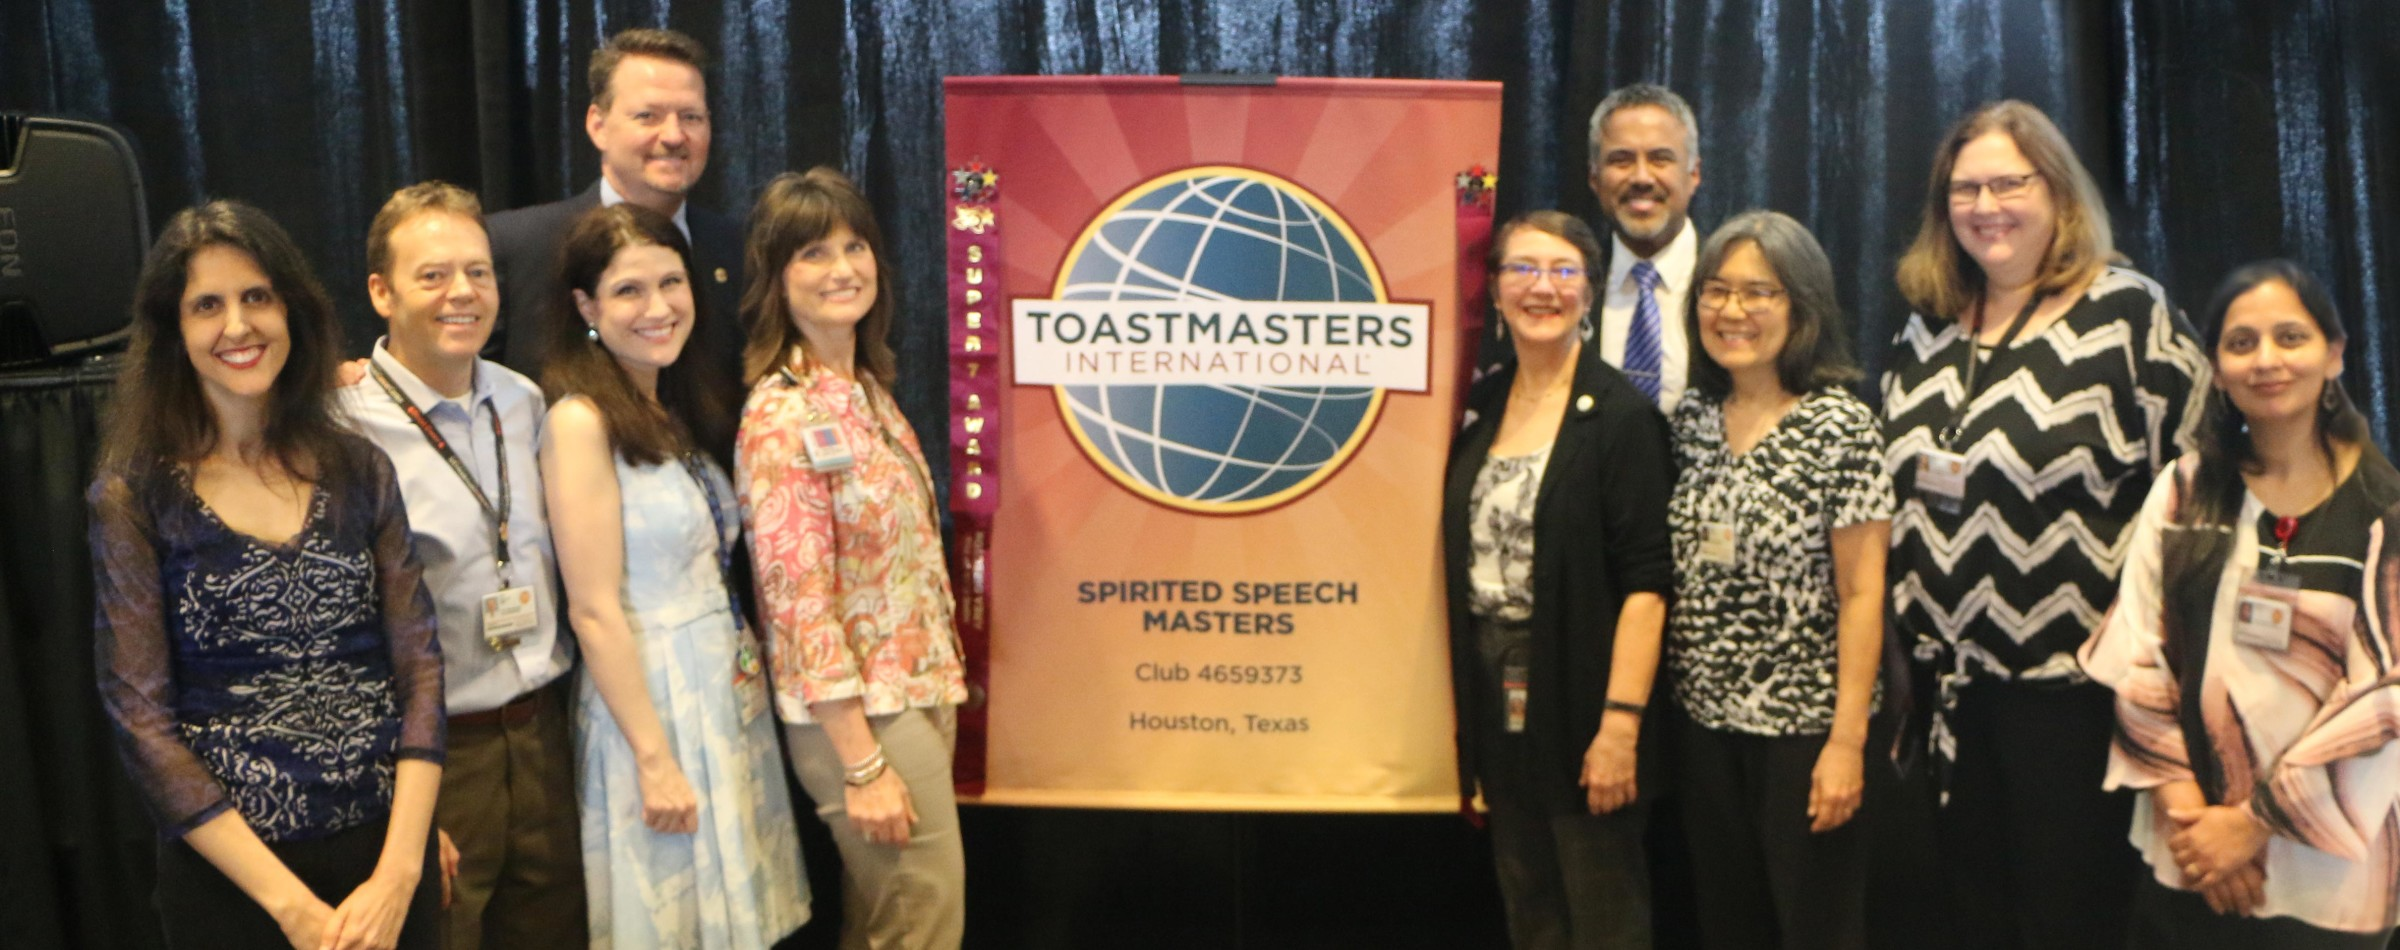 Spirited Speech Masters and Dan Rex honoring MD Anderson and Shibu Varghese